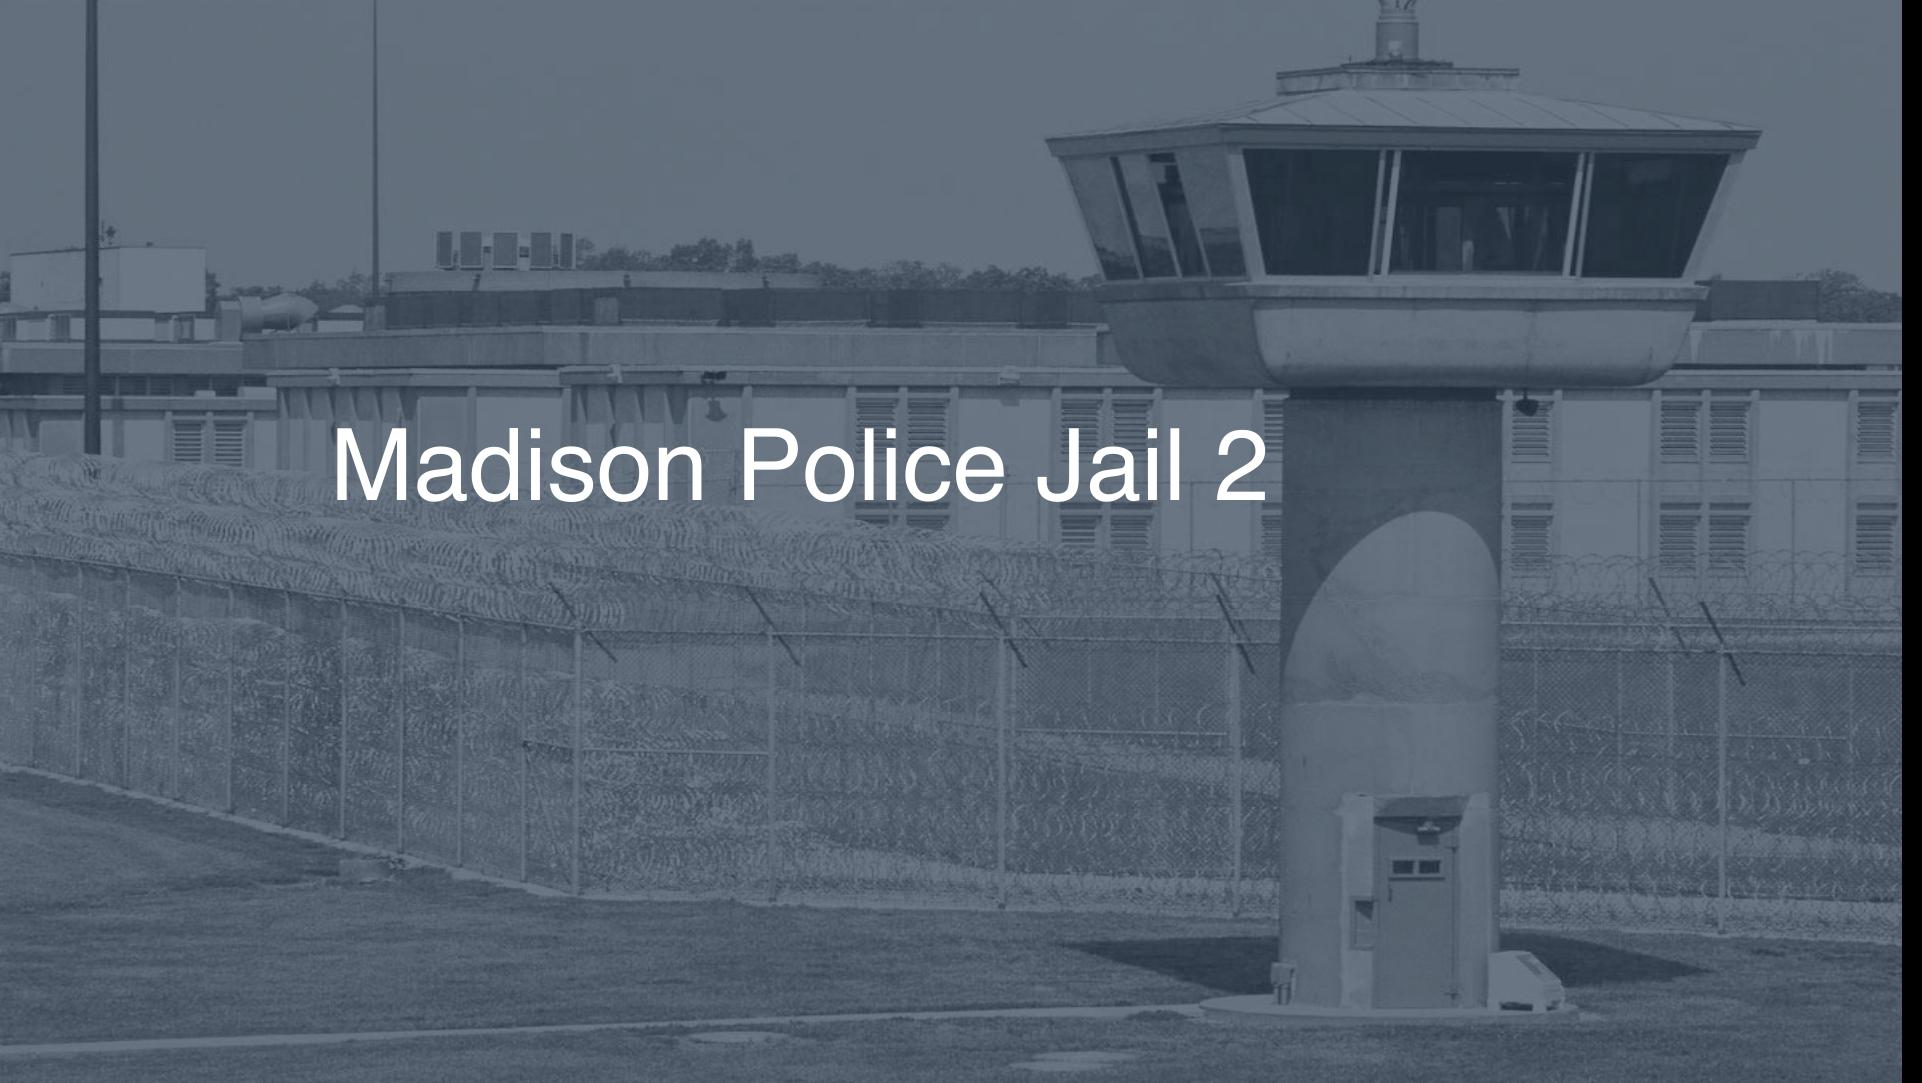 Madison Police Jail correctional facility picture